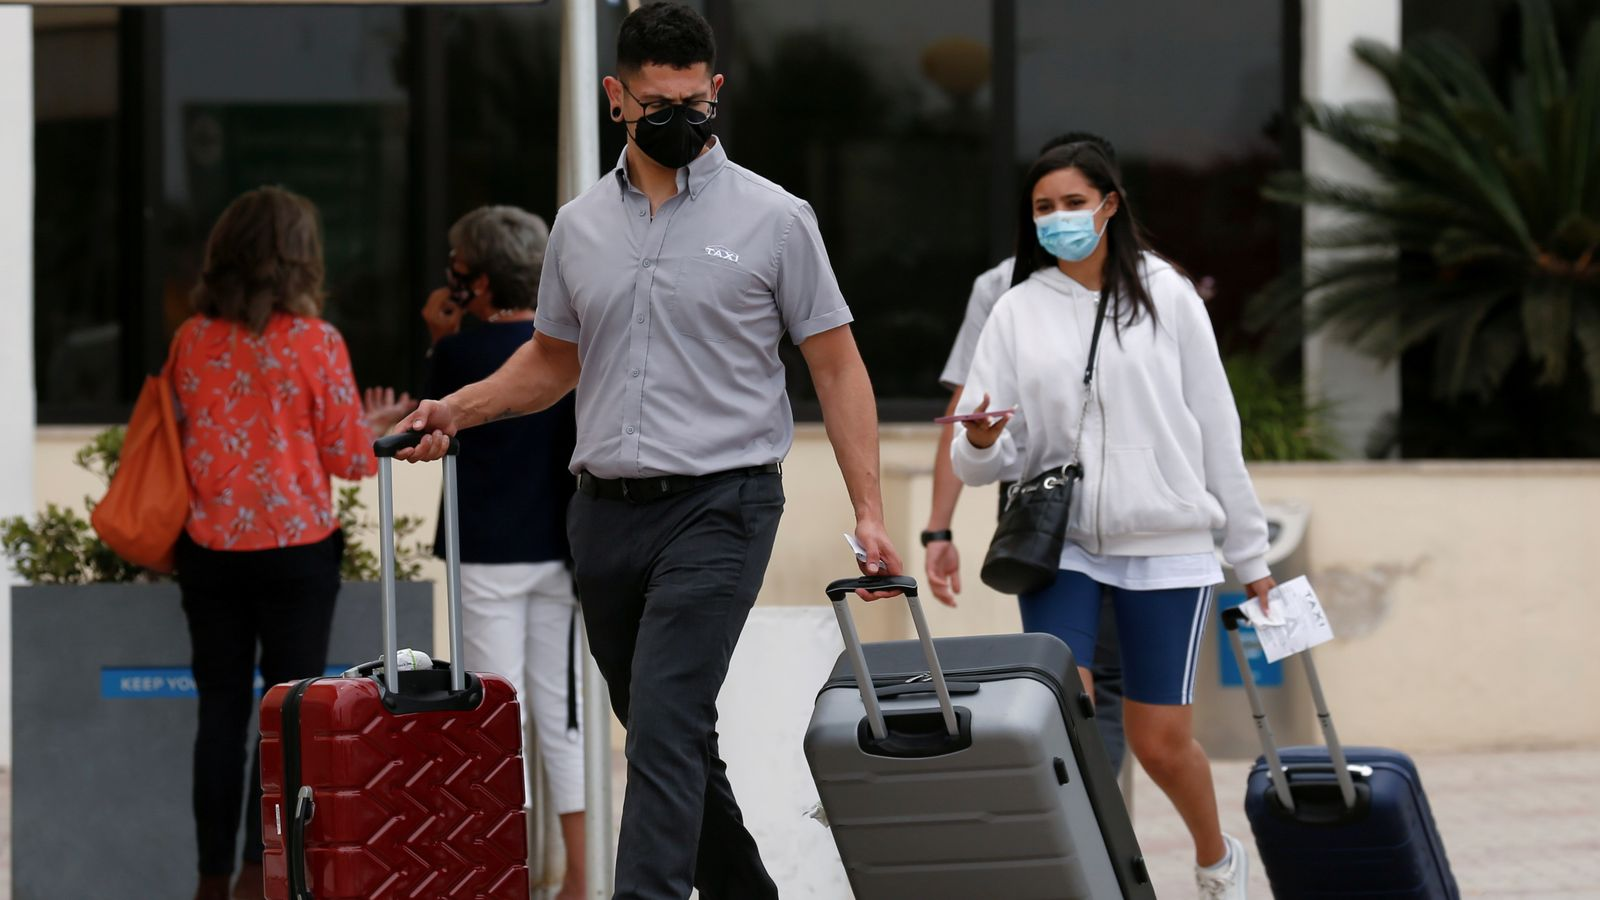 Malta says Britons without two jabs have to quarantine on arrival - after UK puts country on green travel list